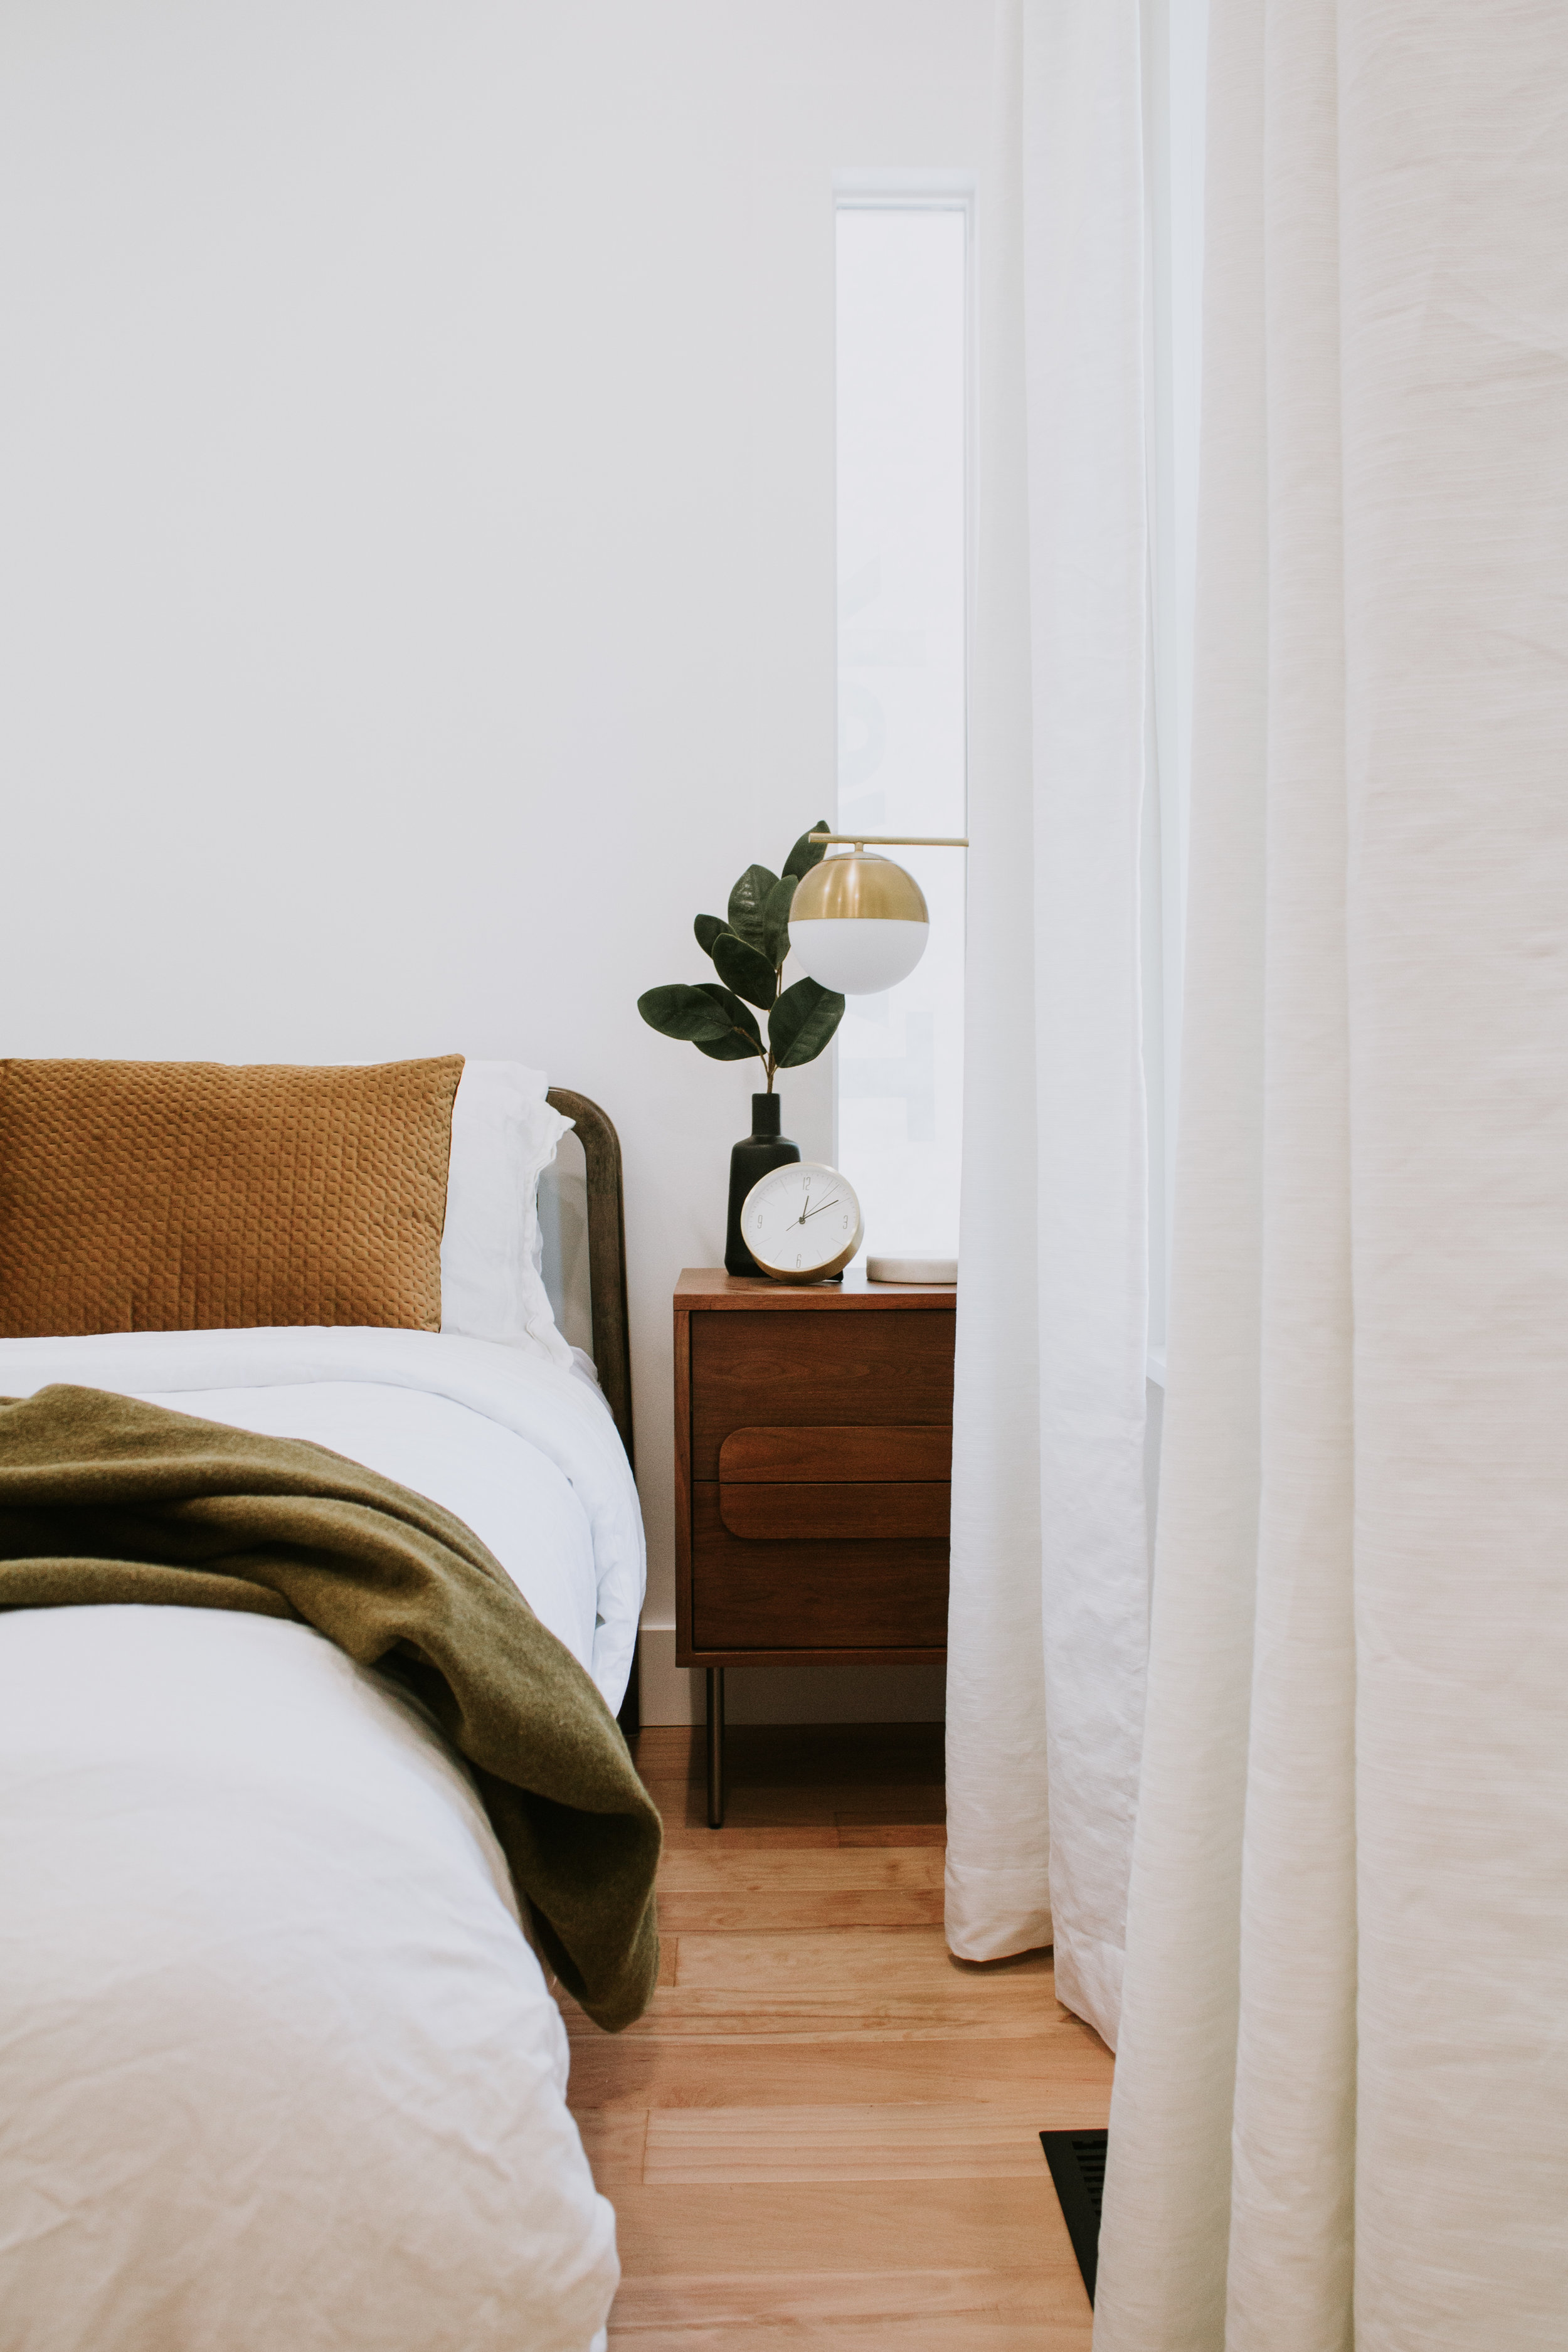 The Guest Bedroom Reveal - A bedroom remodel and transformation by Nadine Stay. Before and After images of our mid century modern retreat.